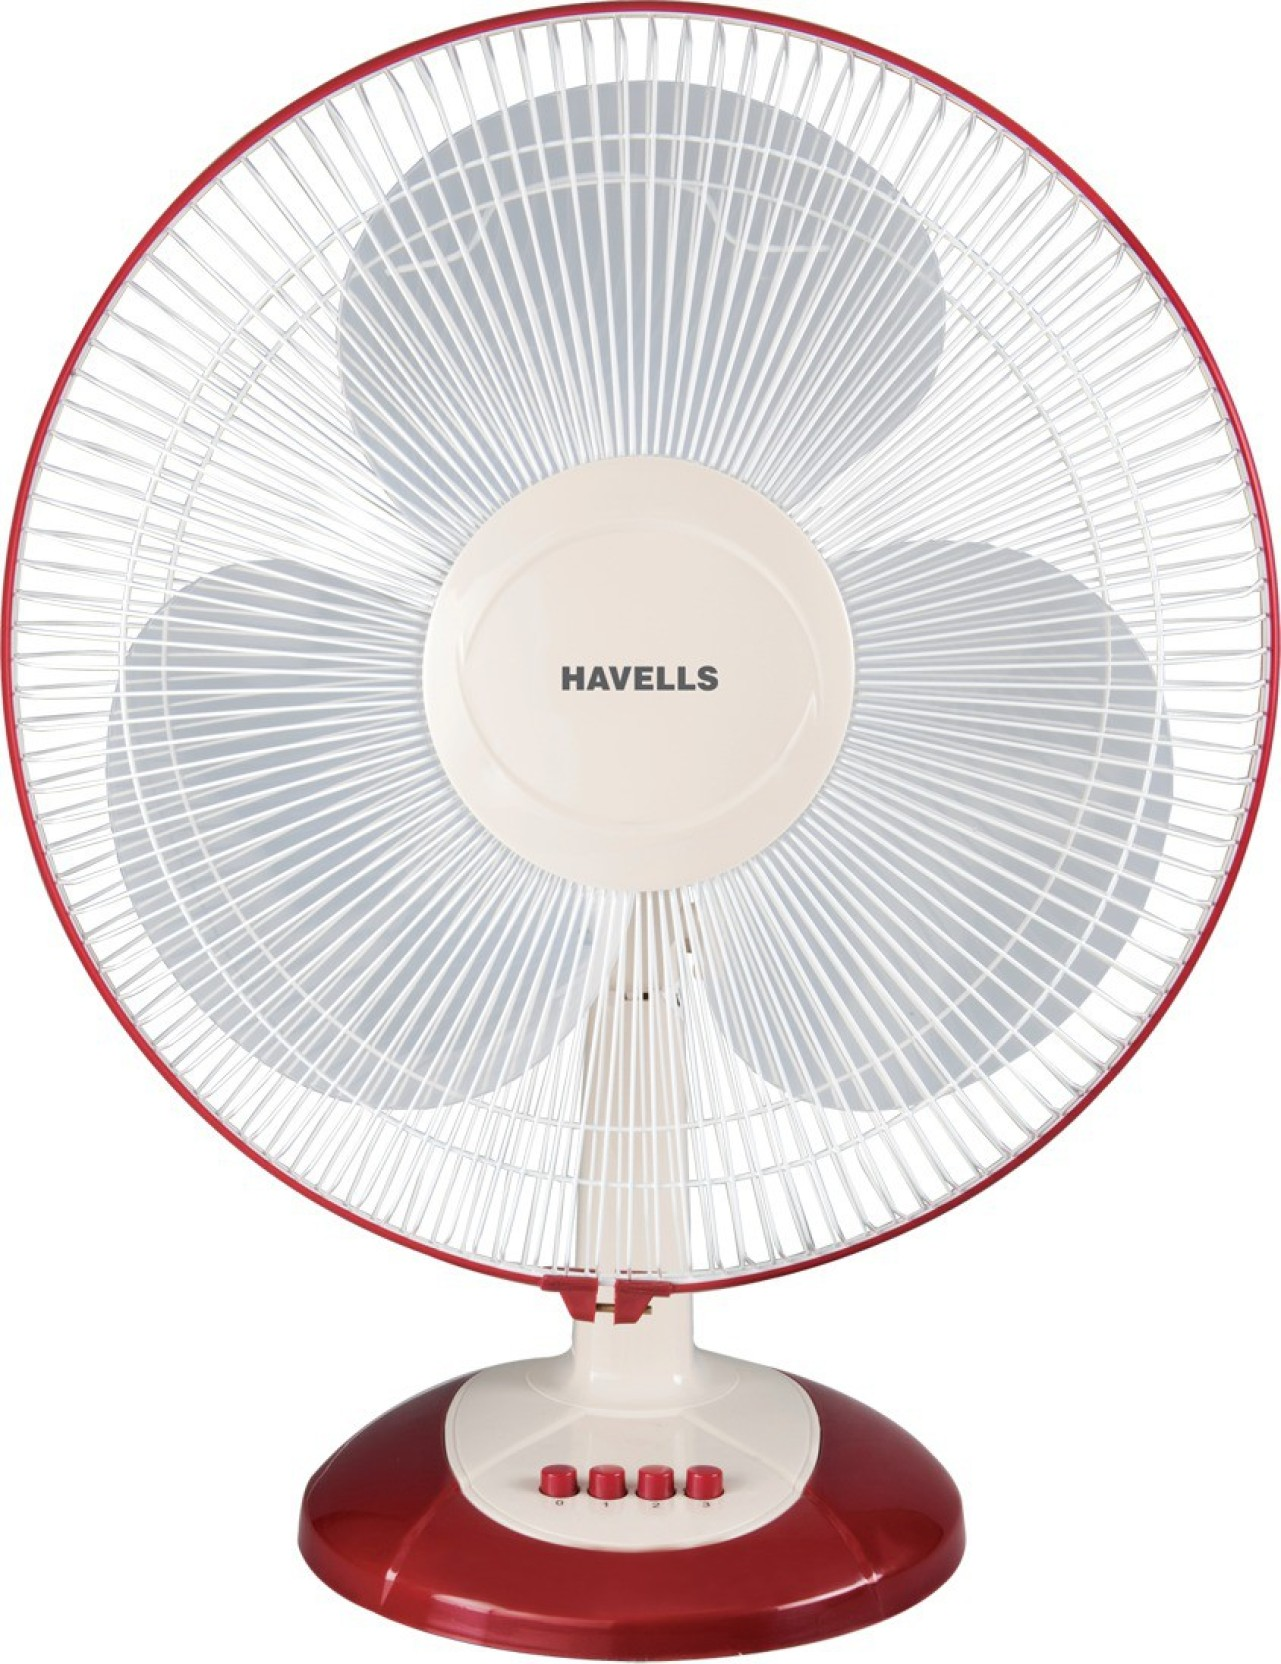 Havells Sameera 3 Blade Table Fan Price In India Buy Electric 16 Pedestal Stainless Steel Of Add To Cart